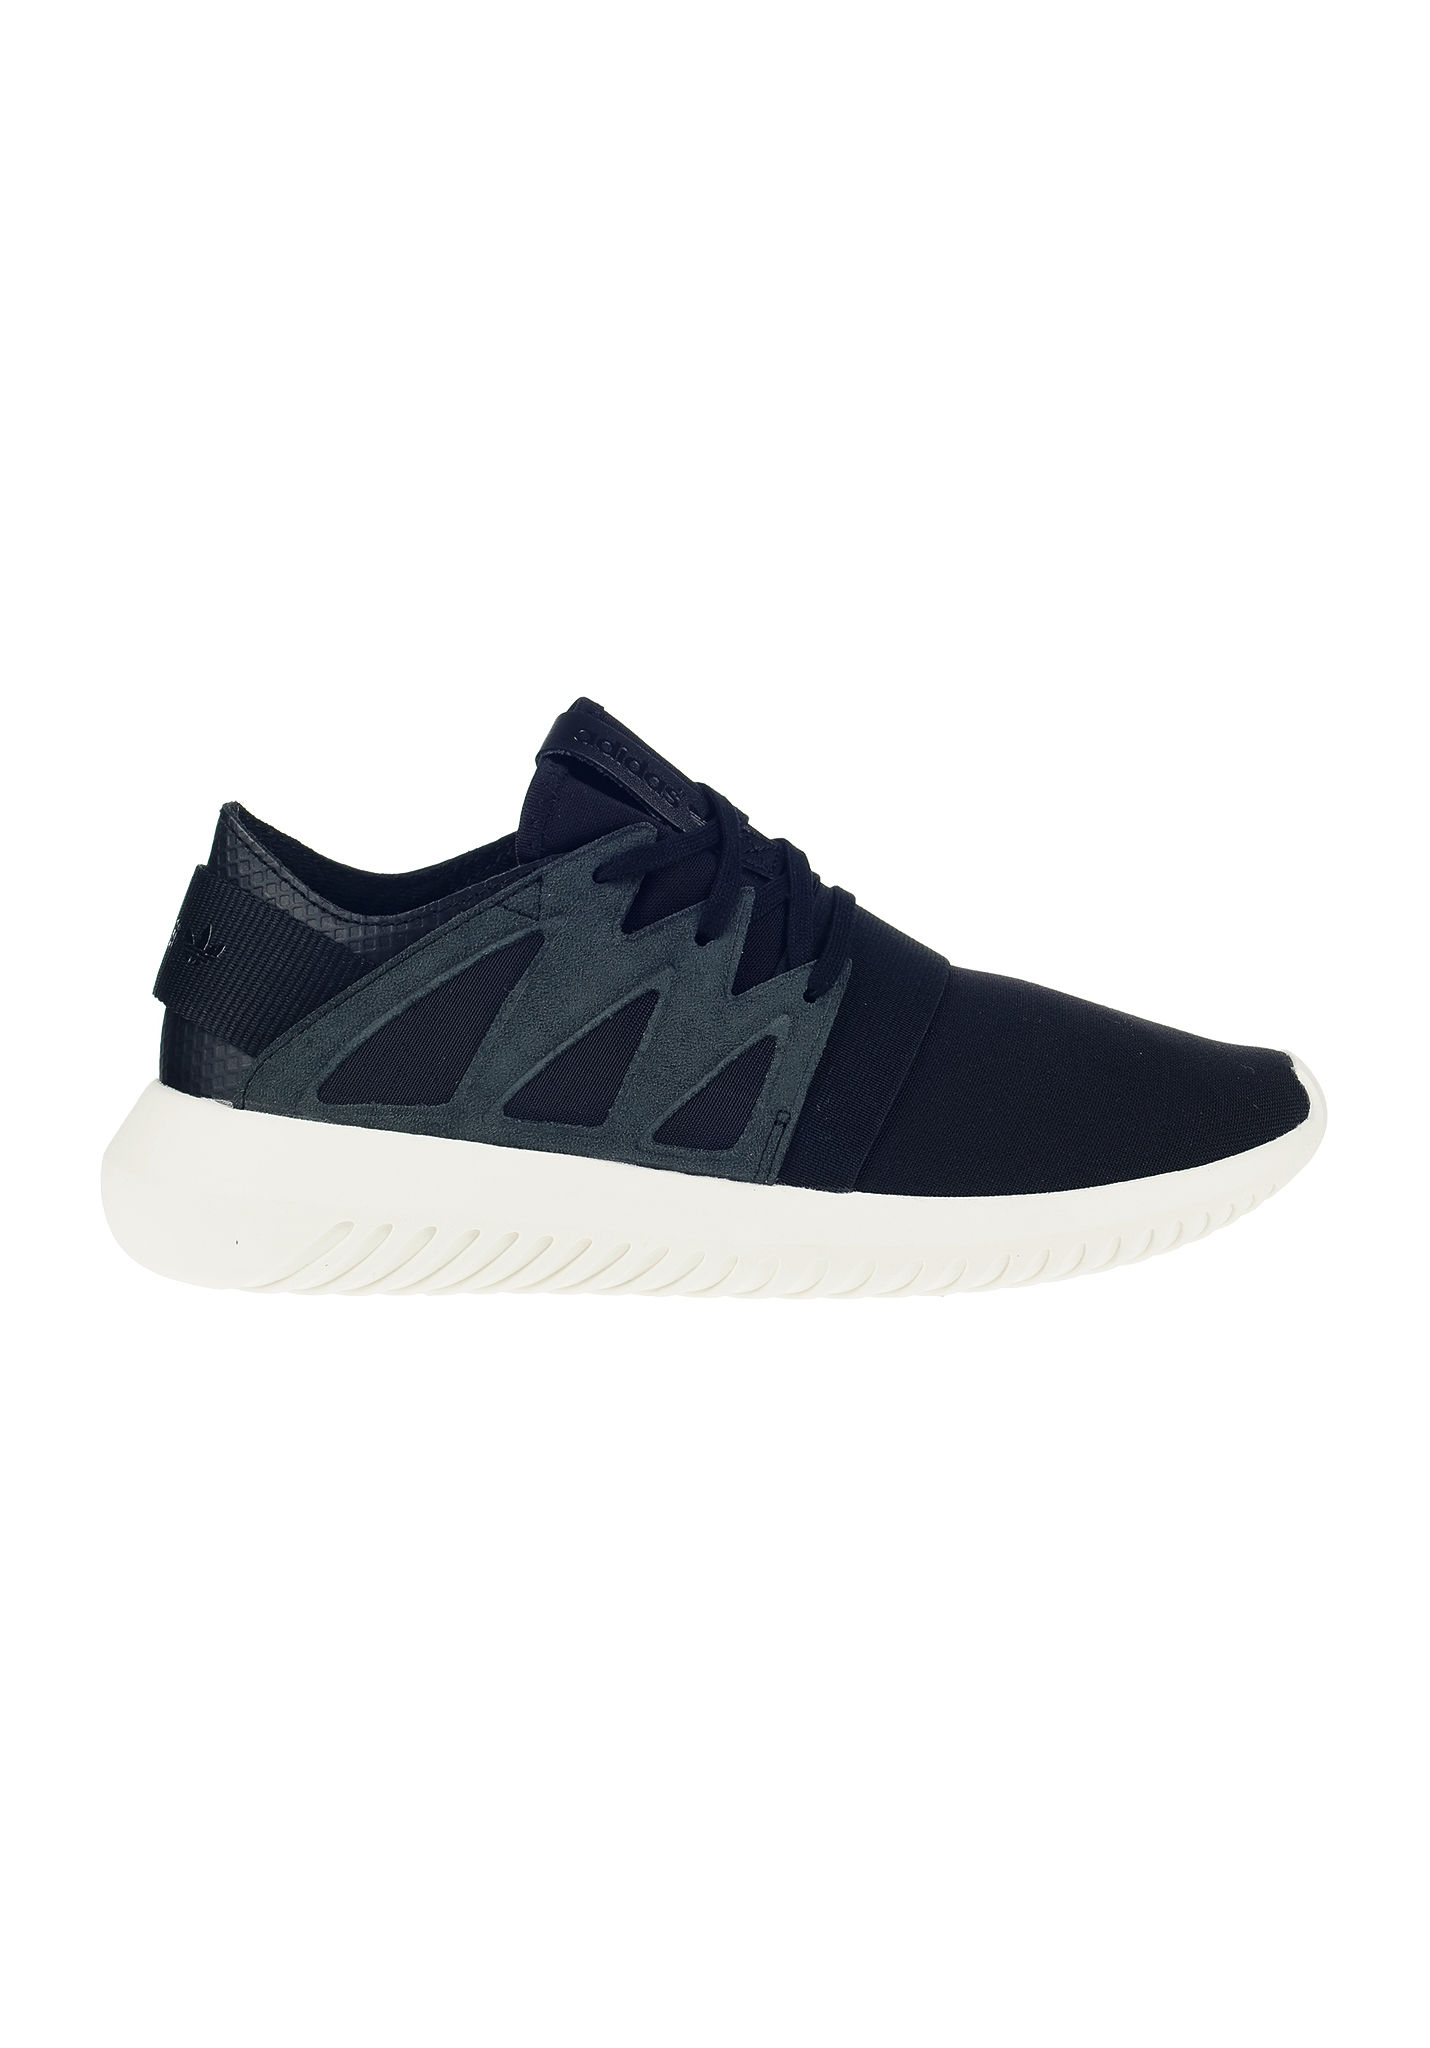 Adidas Originals Tubular Invader Strap Sneakers In Blue BB 5036 Asos